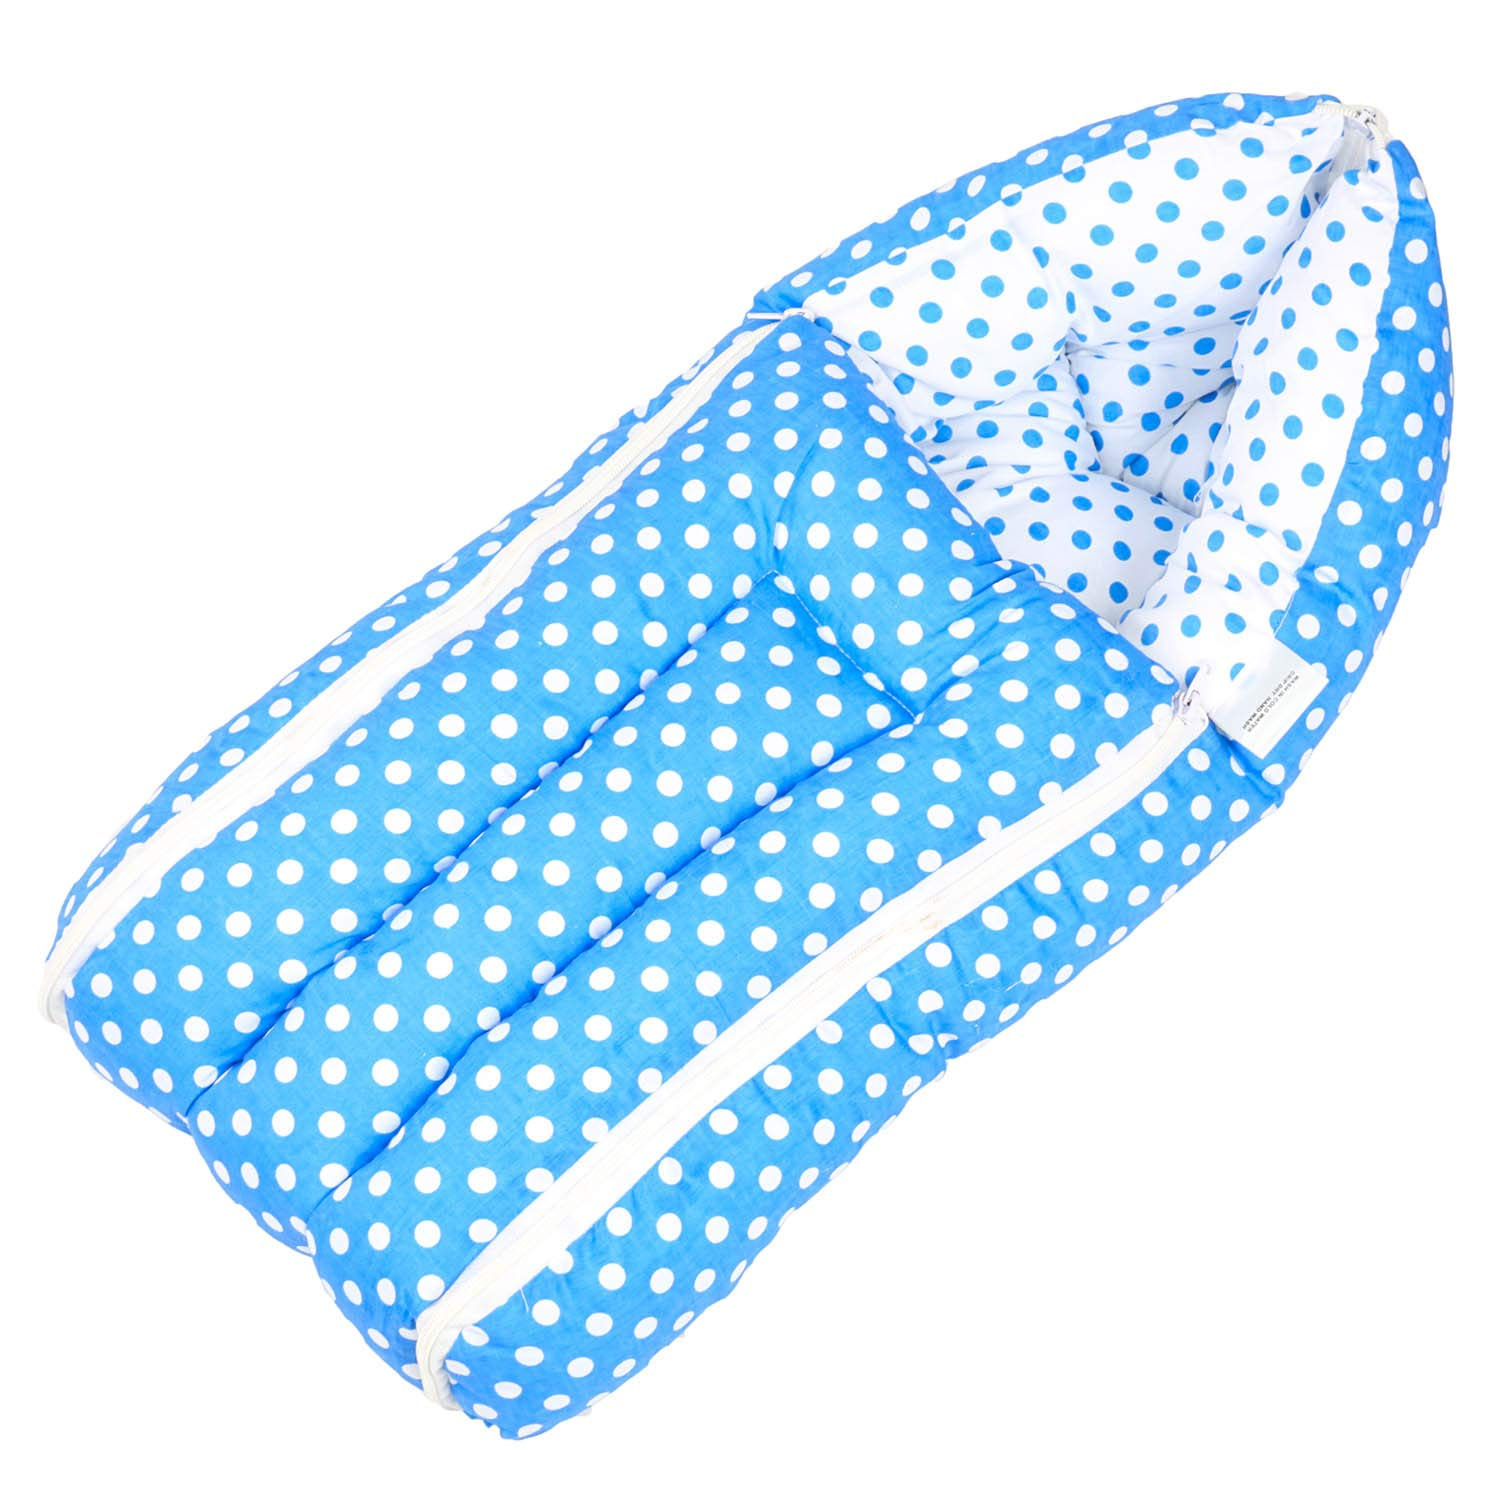 Baybee 3 in 1 Cotton Bed Cum Baby Sleeping Bag – Infant Portable Bassinet, Nest for Cosleeping for 0-6 Months - Blue